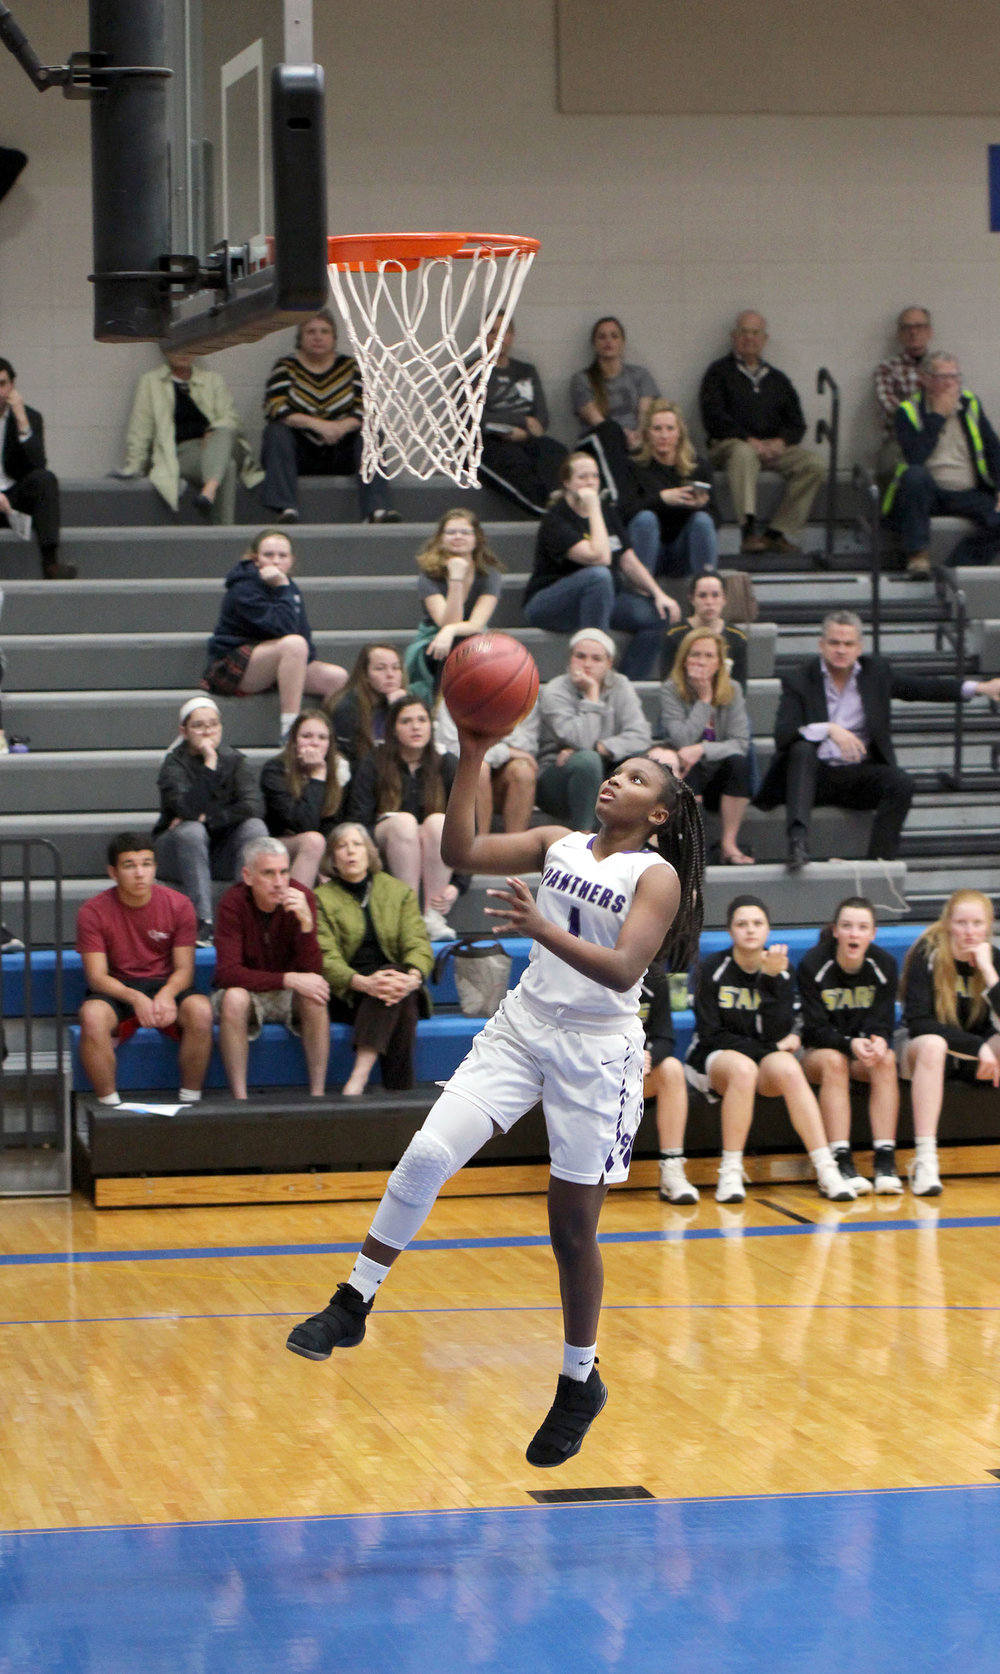 CODY THORN/Citizen photo Park Hill South guard DeQuaria Guillory goes up for a layup during the Class 5 District 14 semifinal game on Wednesday, Feb. 28 at Rockhurst High School in Kansas City.